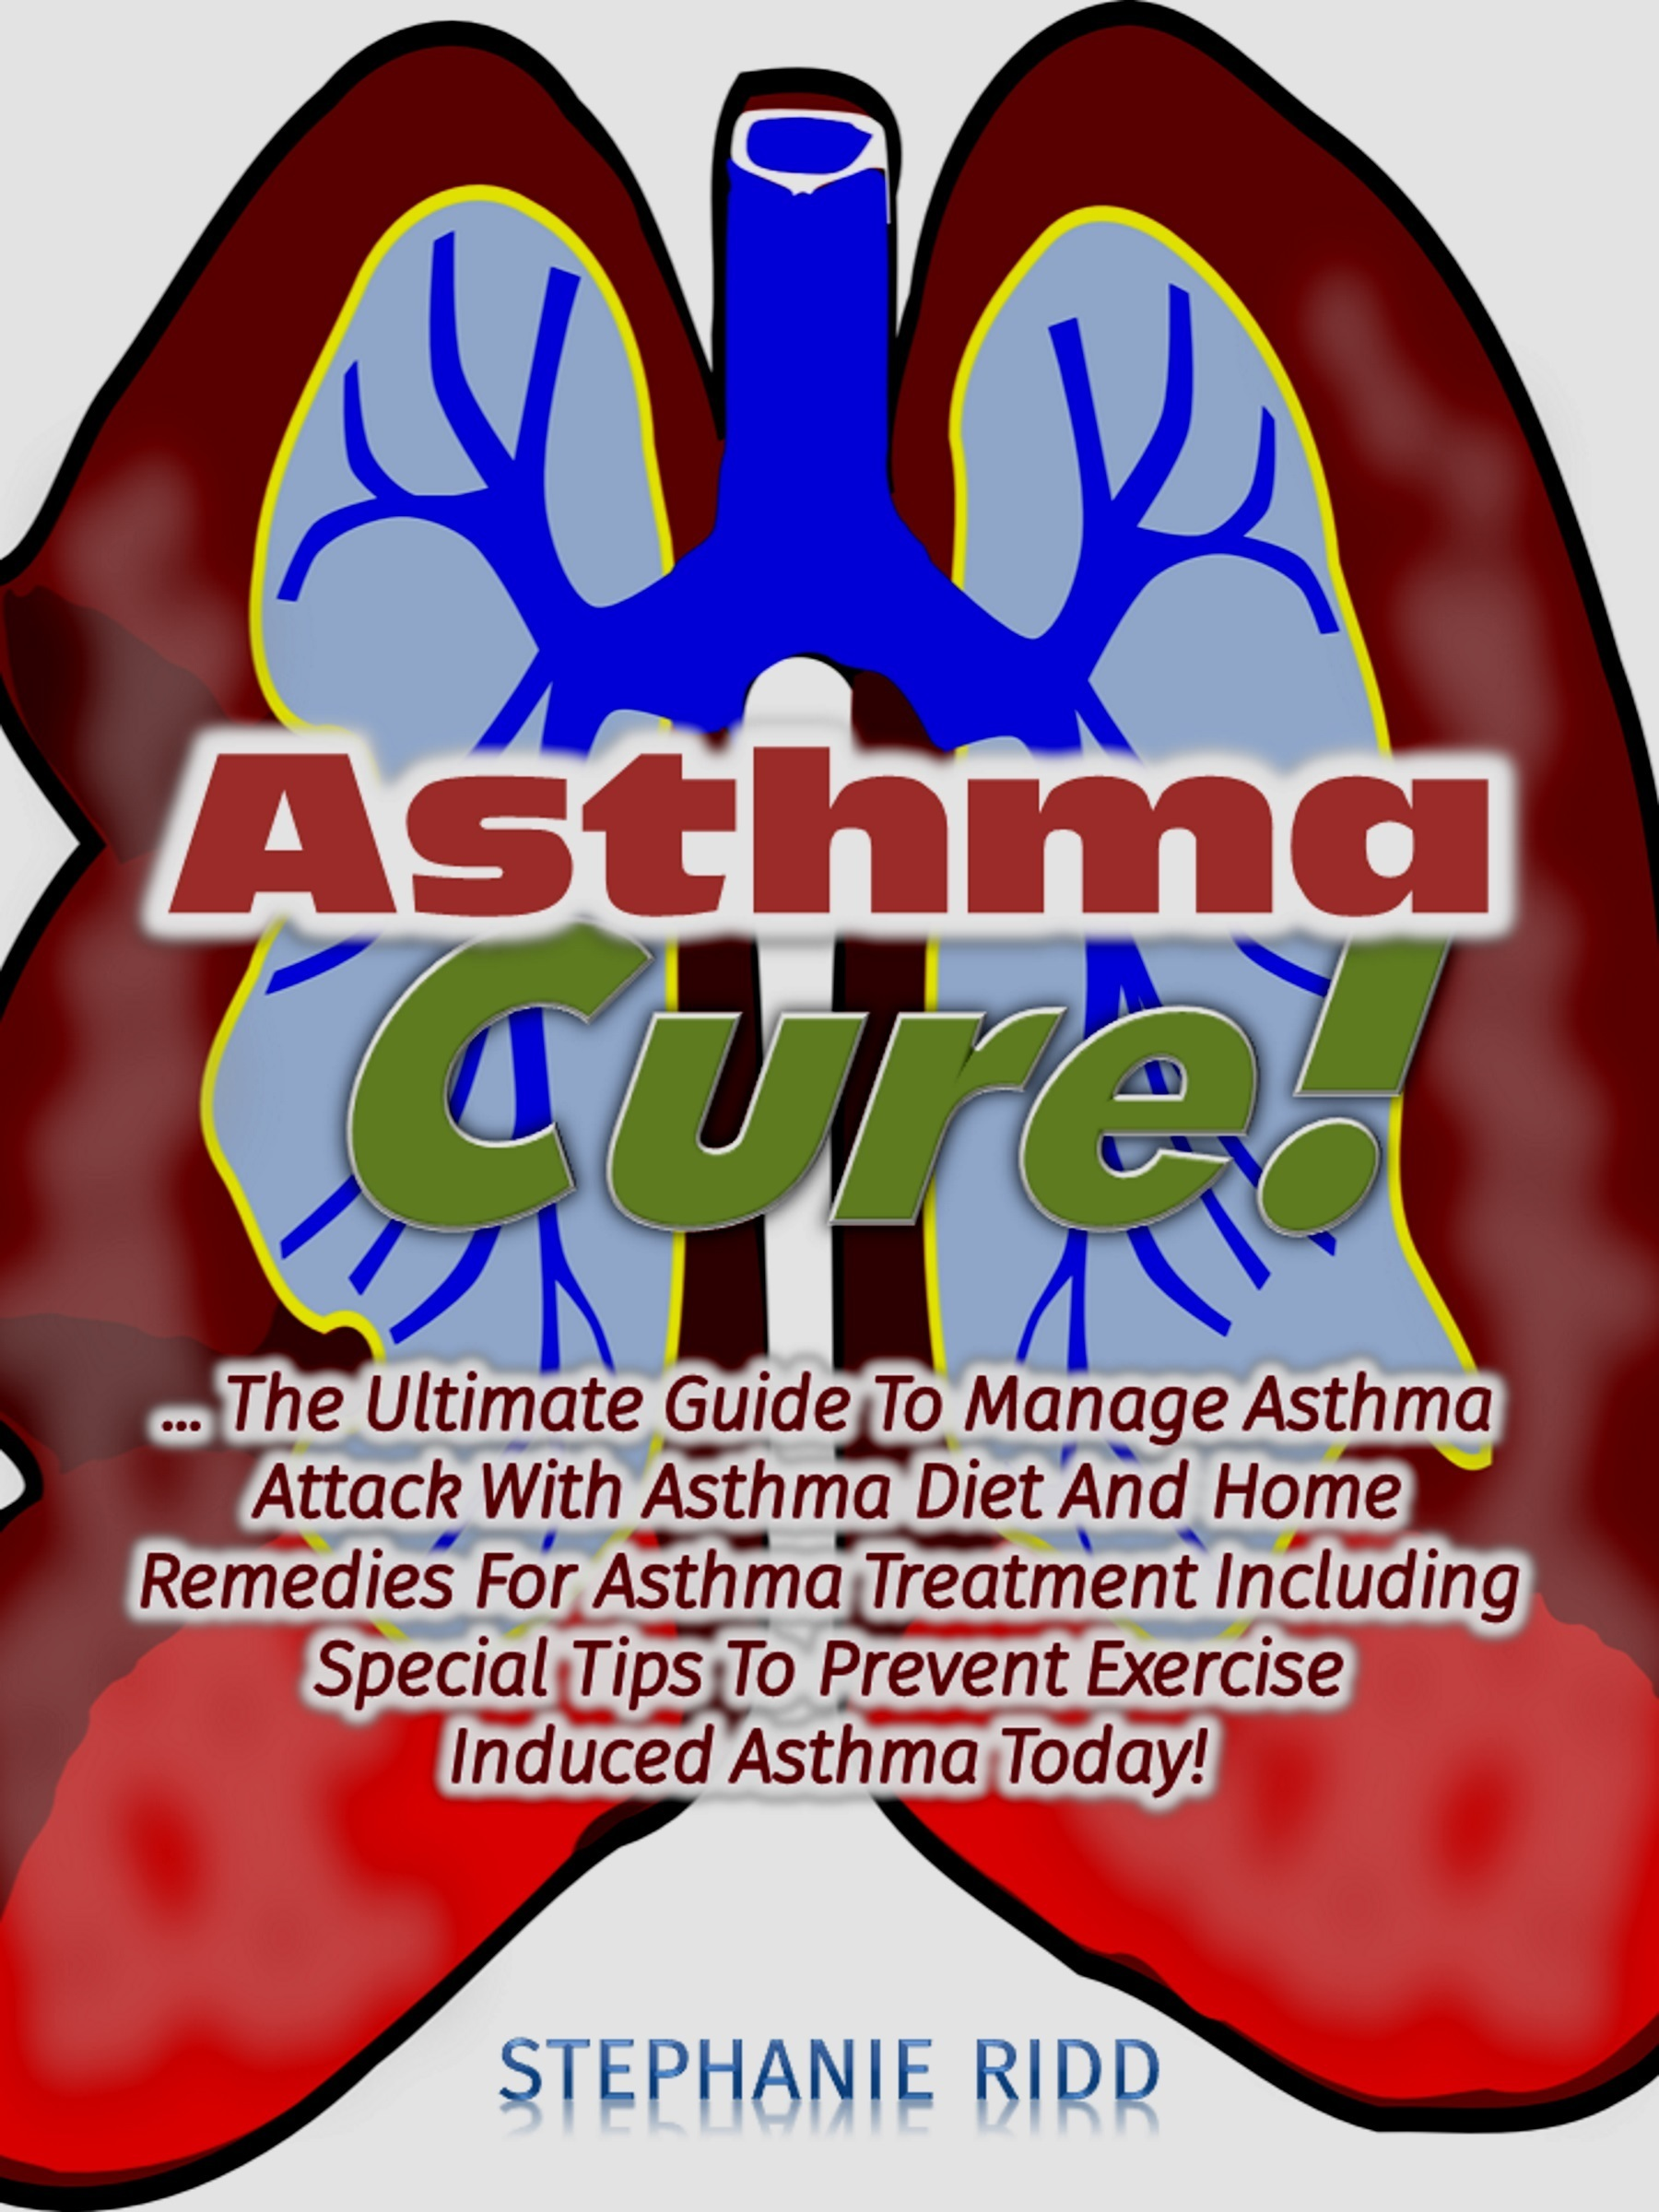 Asthma Cure!: The Ultimate Guide To Manage Asthma Attack With Asthma Diet And Home Remedies For Asthma Treatment Including Special Tips To Prevent Exercise Induced Asthma Today!  by  Stephanie Ridd